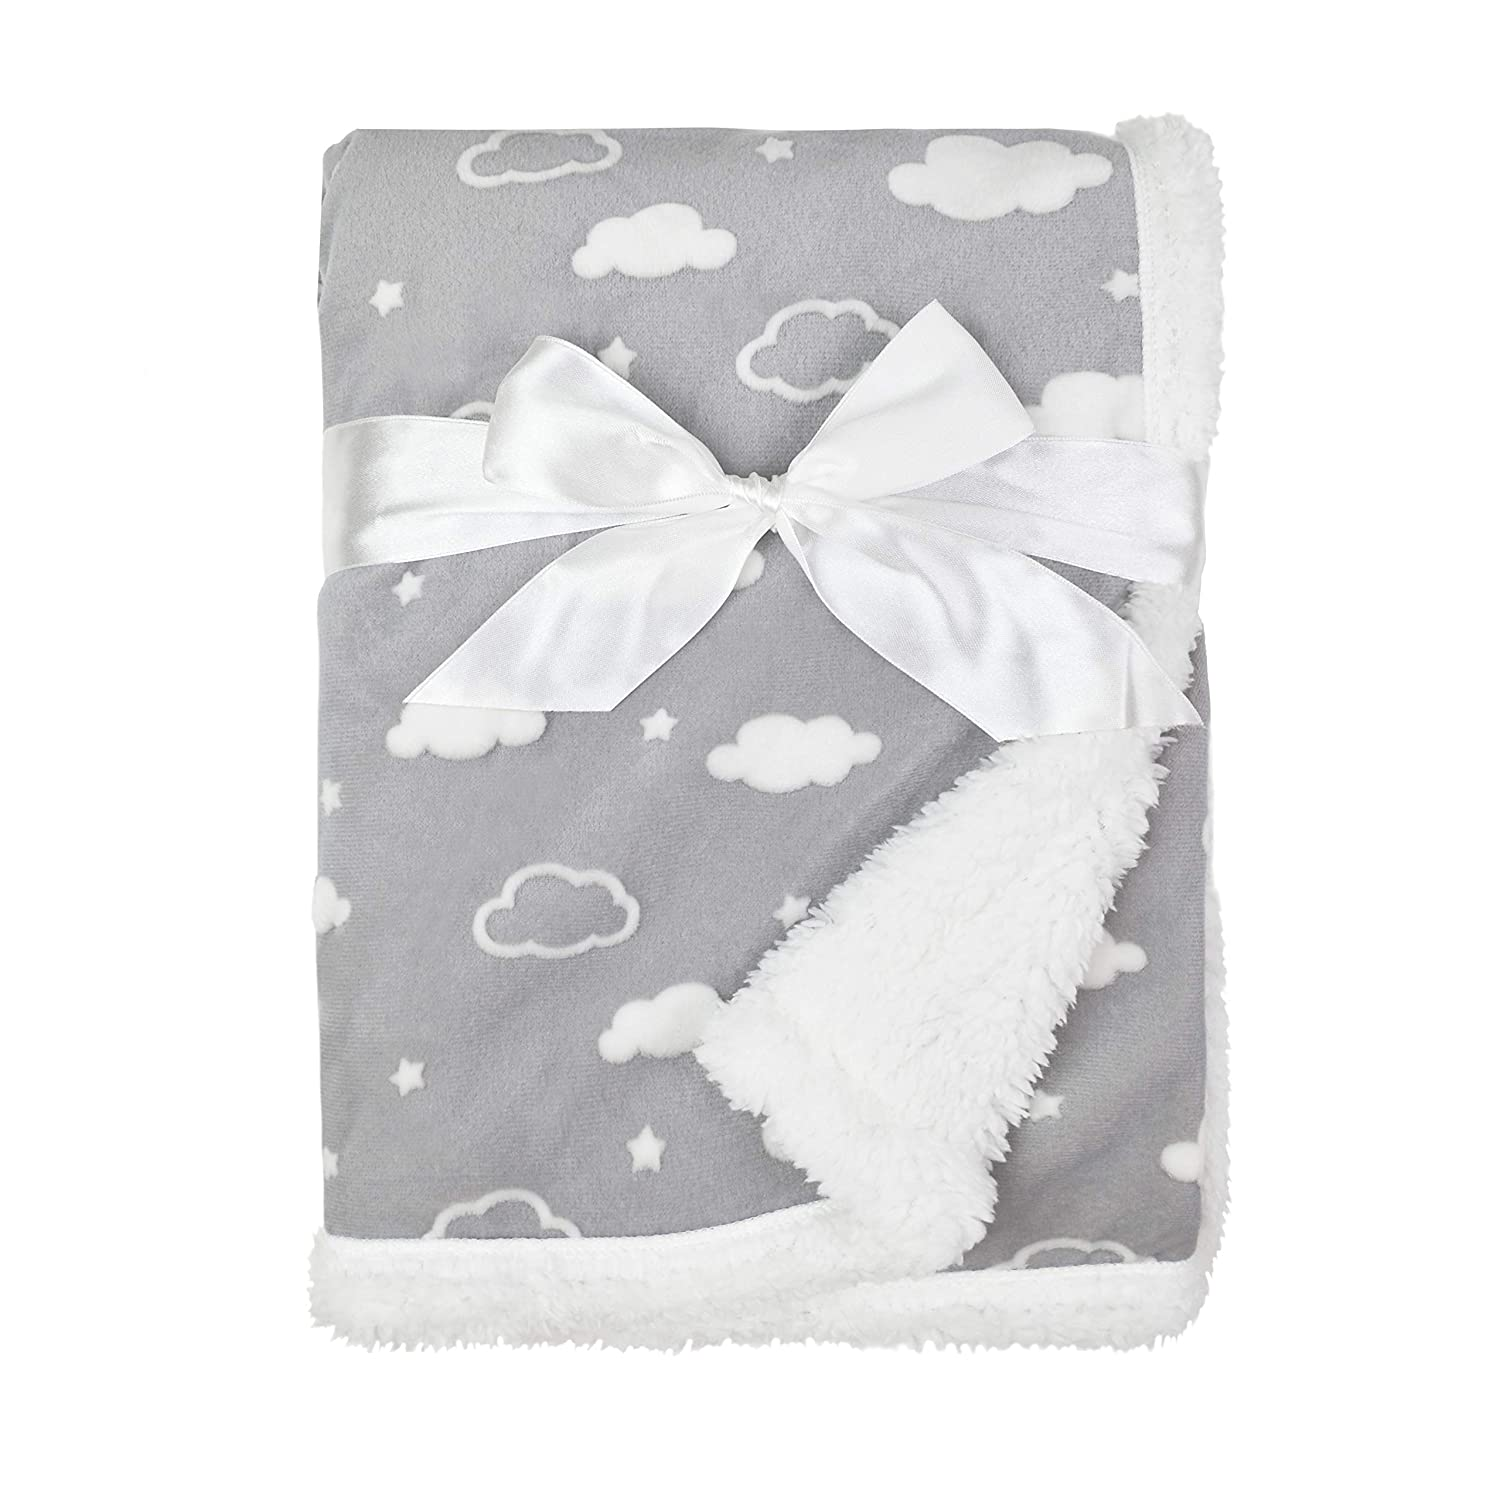 "American Baby Company Heavenly Soft Sherpa/Chenille Receiving Blanket, 3D Cloud Grey, 30"" x 35"", for Boys and Girls : Baby"